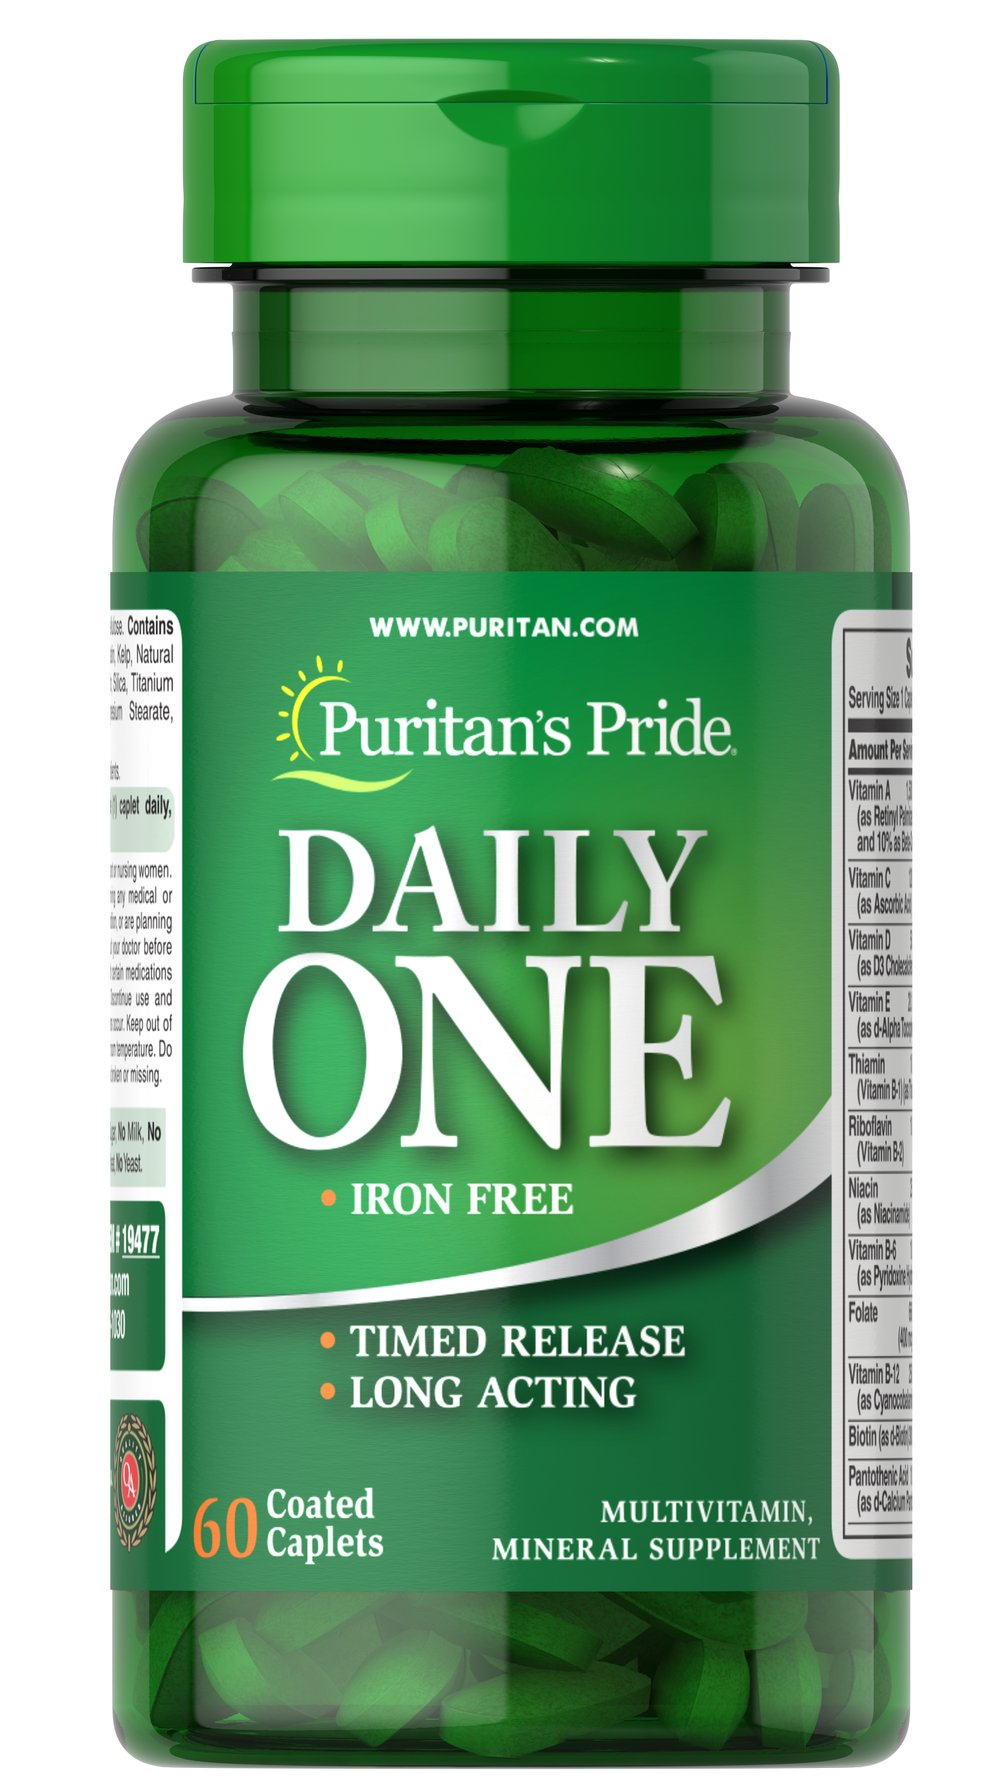 Iron Free Multivitamins Timed Release <p>Provides more than 20 vitamins and minerals for overall health and wellness**</p><p>Iron-Free formula is perfect for those looking to limit their intake of Iron</p><p>A super convenient dose of just one long-acting coated caplet a day</p><p>Our timed release formula supplies prolonged absorption of B-Complex and C vitamins for heart, immune and nervous system health**</p> 60 Caplets  $14.99